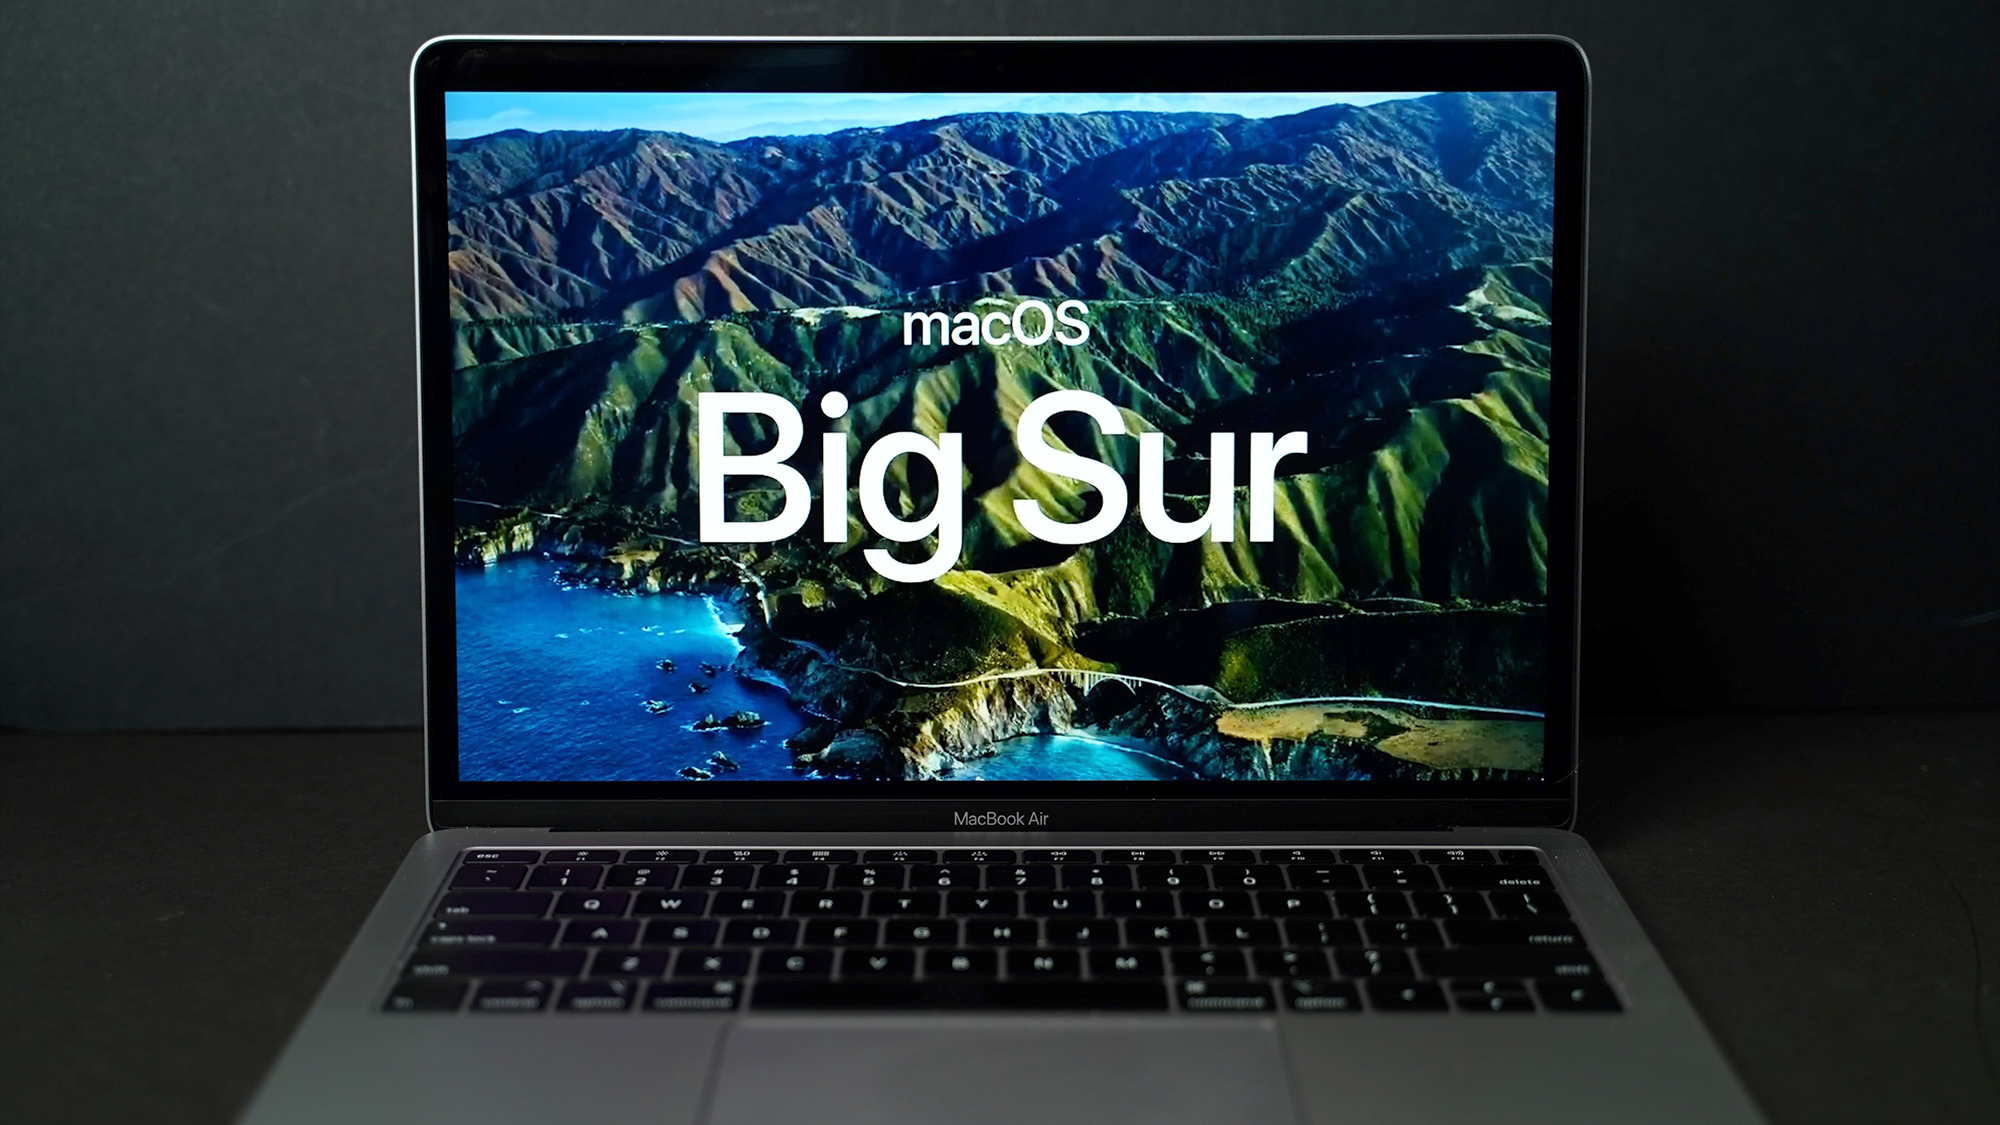 First Look: macOS Big Sur With Redesign, Safari Updates, New Messages App and More thumbnail